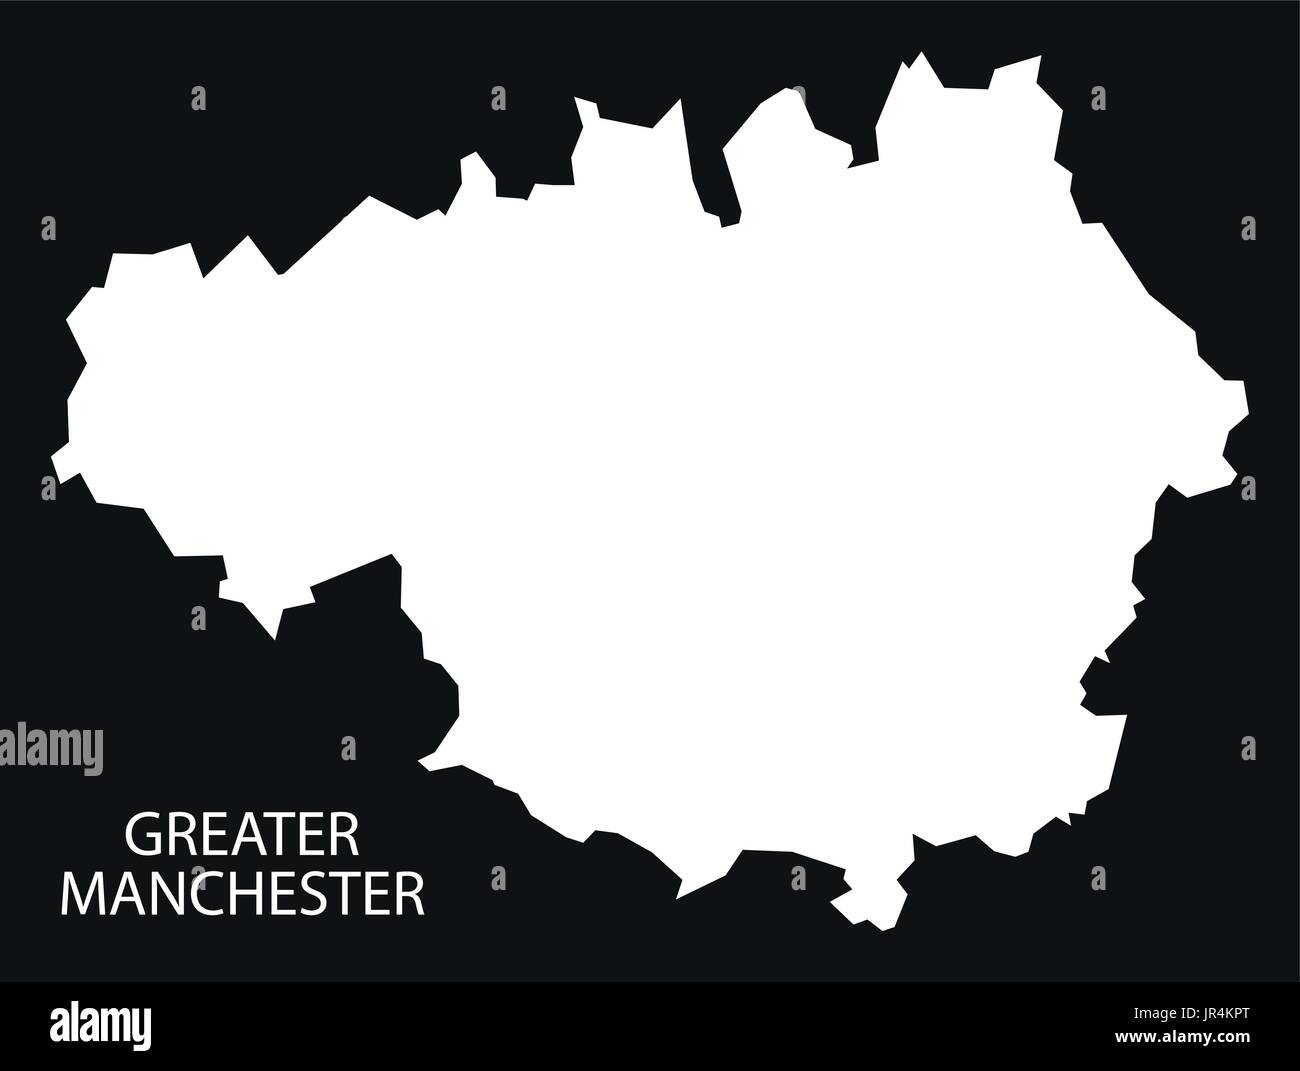 Greater Manchester England UK map black inverted silhouette Stock ...